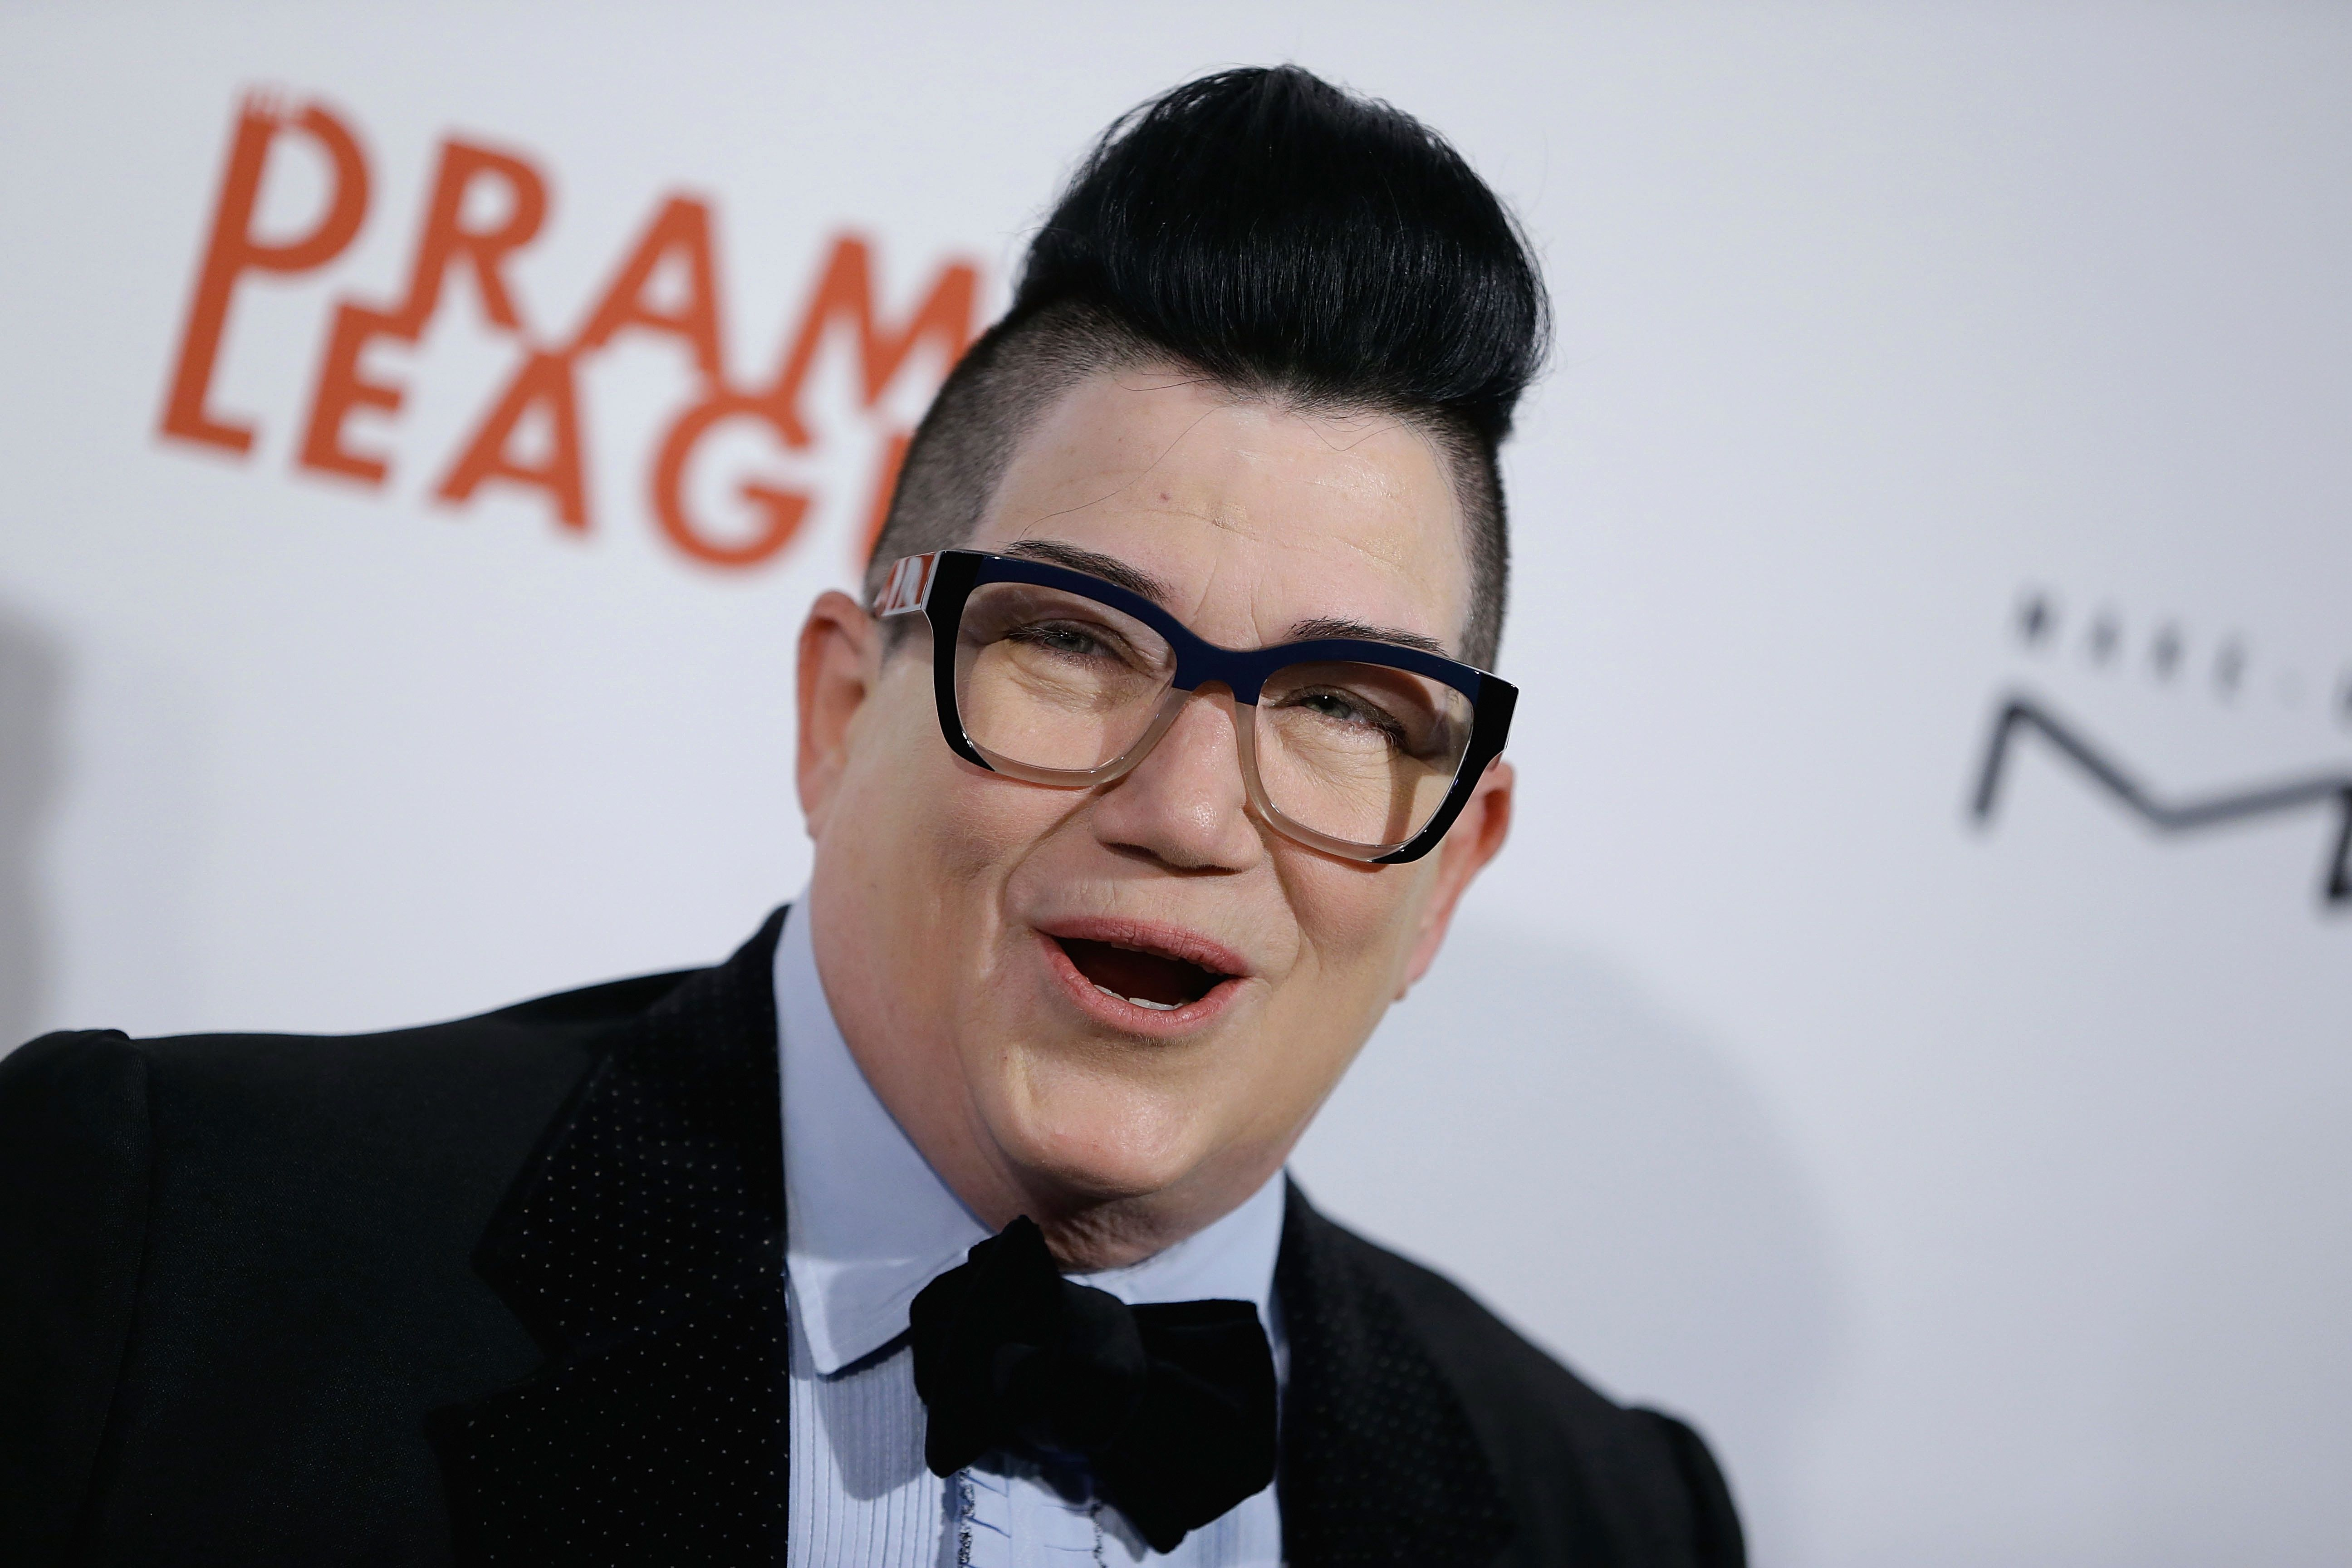 Lea DeLaria: Butch Lesbians Are 'Pariahs' Of The LGBT Community | HuffPost